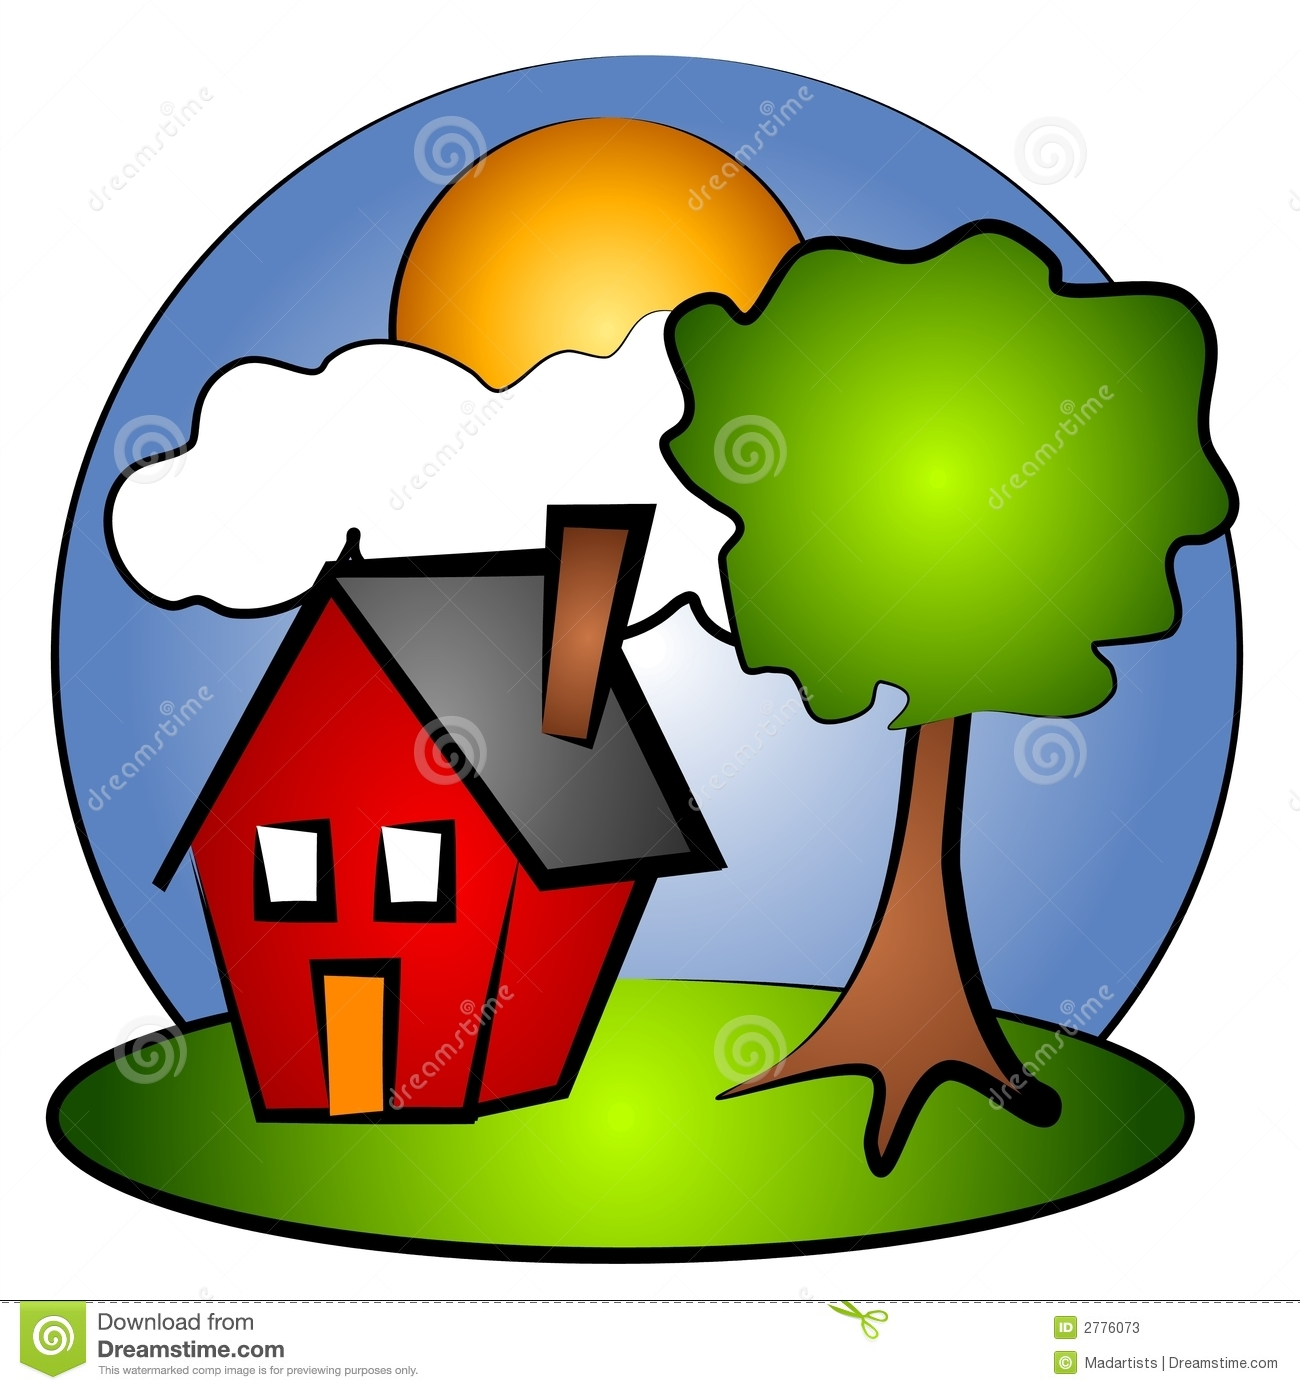 house rural scene clip art 2 stock illustration illustration of rh dreamstime com house clipart no background house clipart image